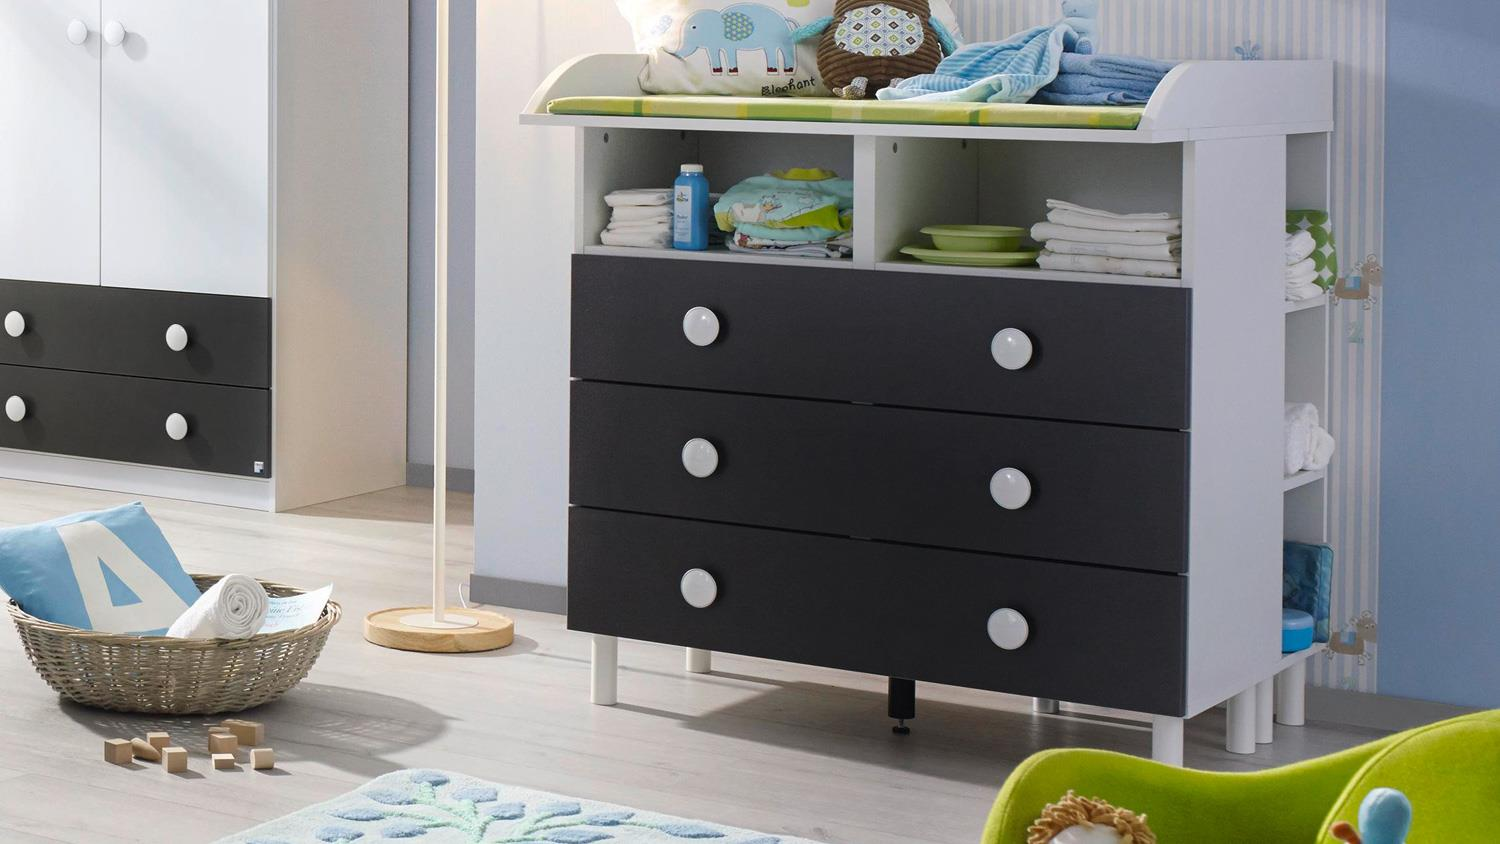 babyzimmer filipo kinderzimmer komplett set wei grau metallic 3 tlg. Black Bedroom Furniture Sets. Home Design Ideas